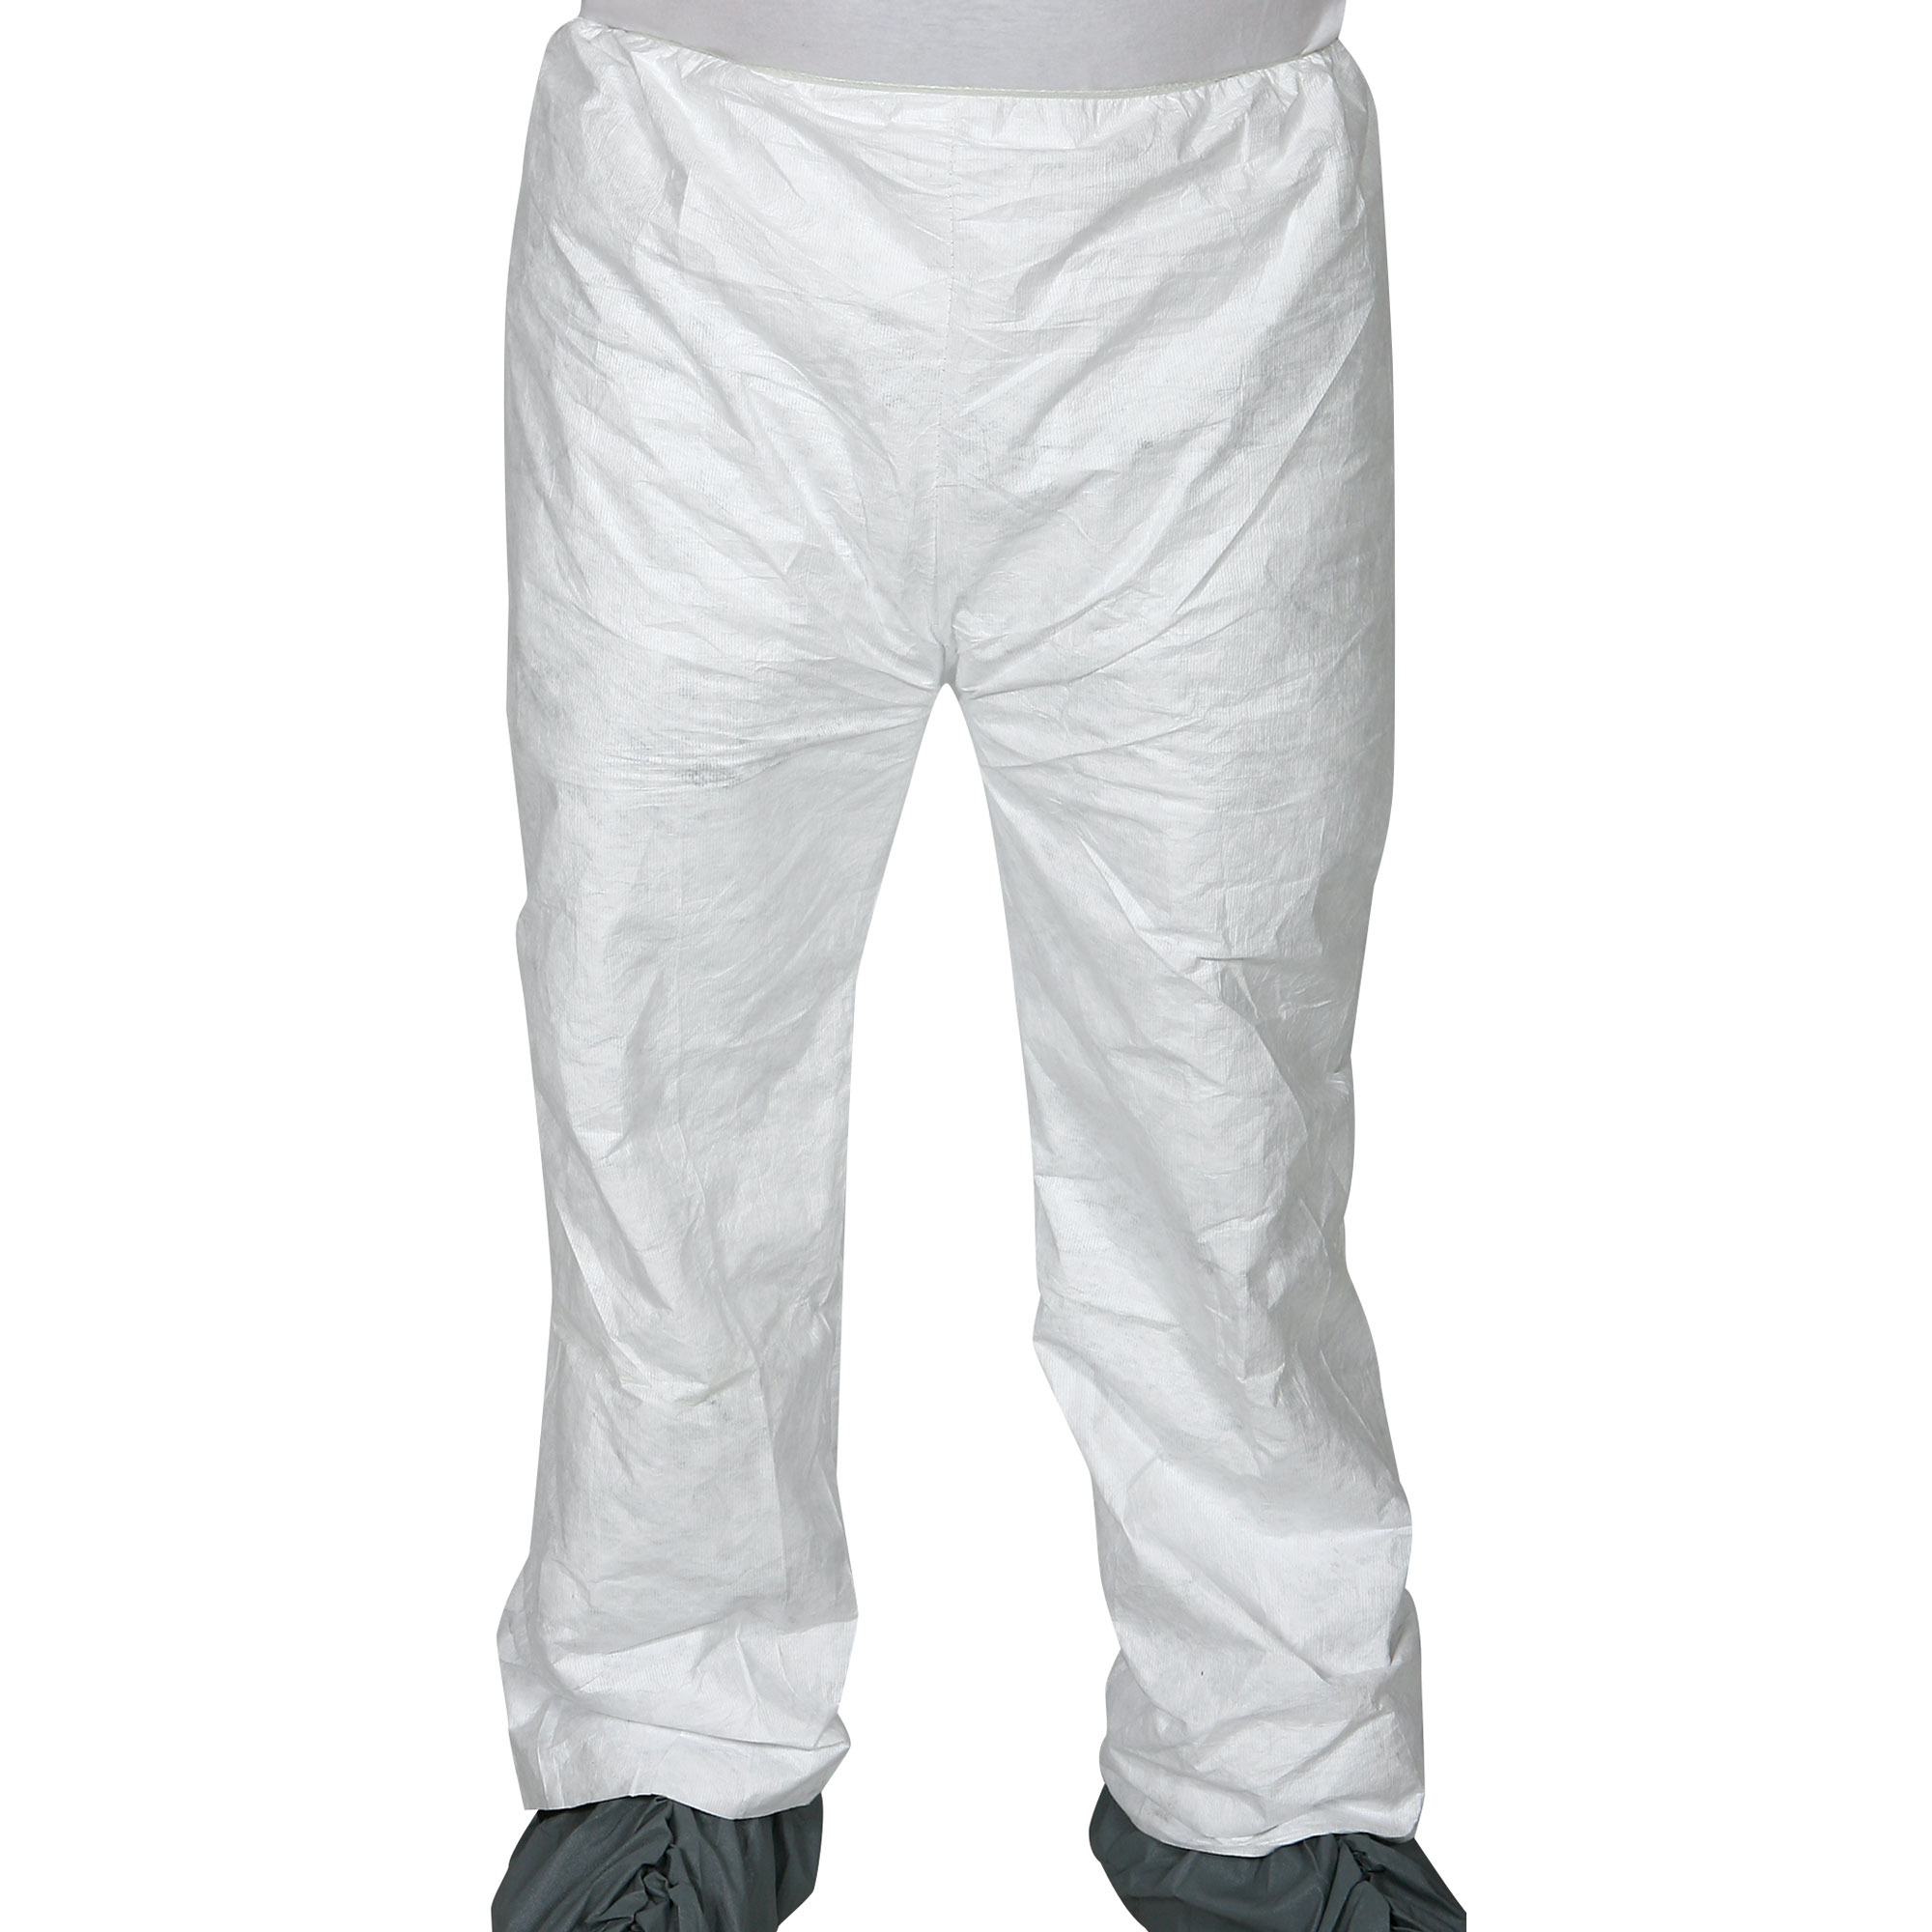 Tyvek Disposable Pants 2xl - White - 14350